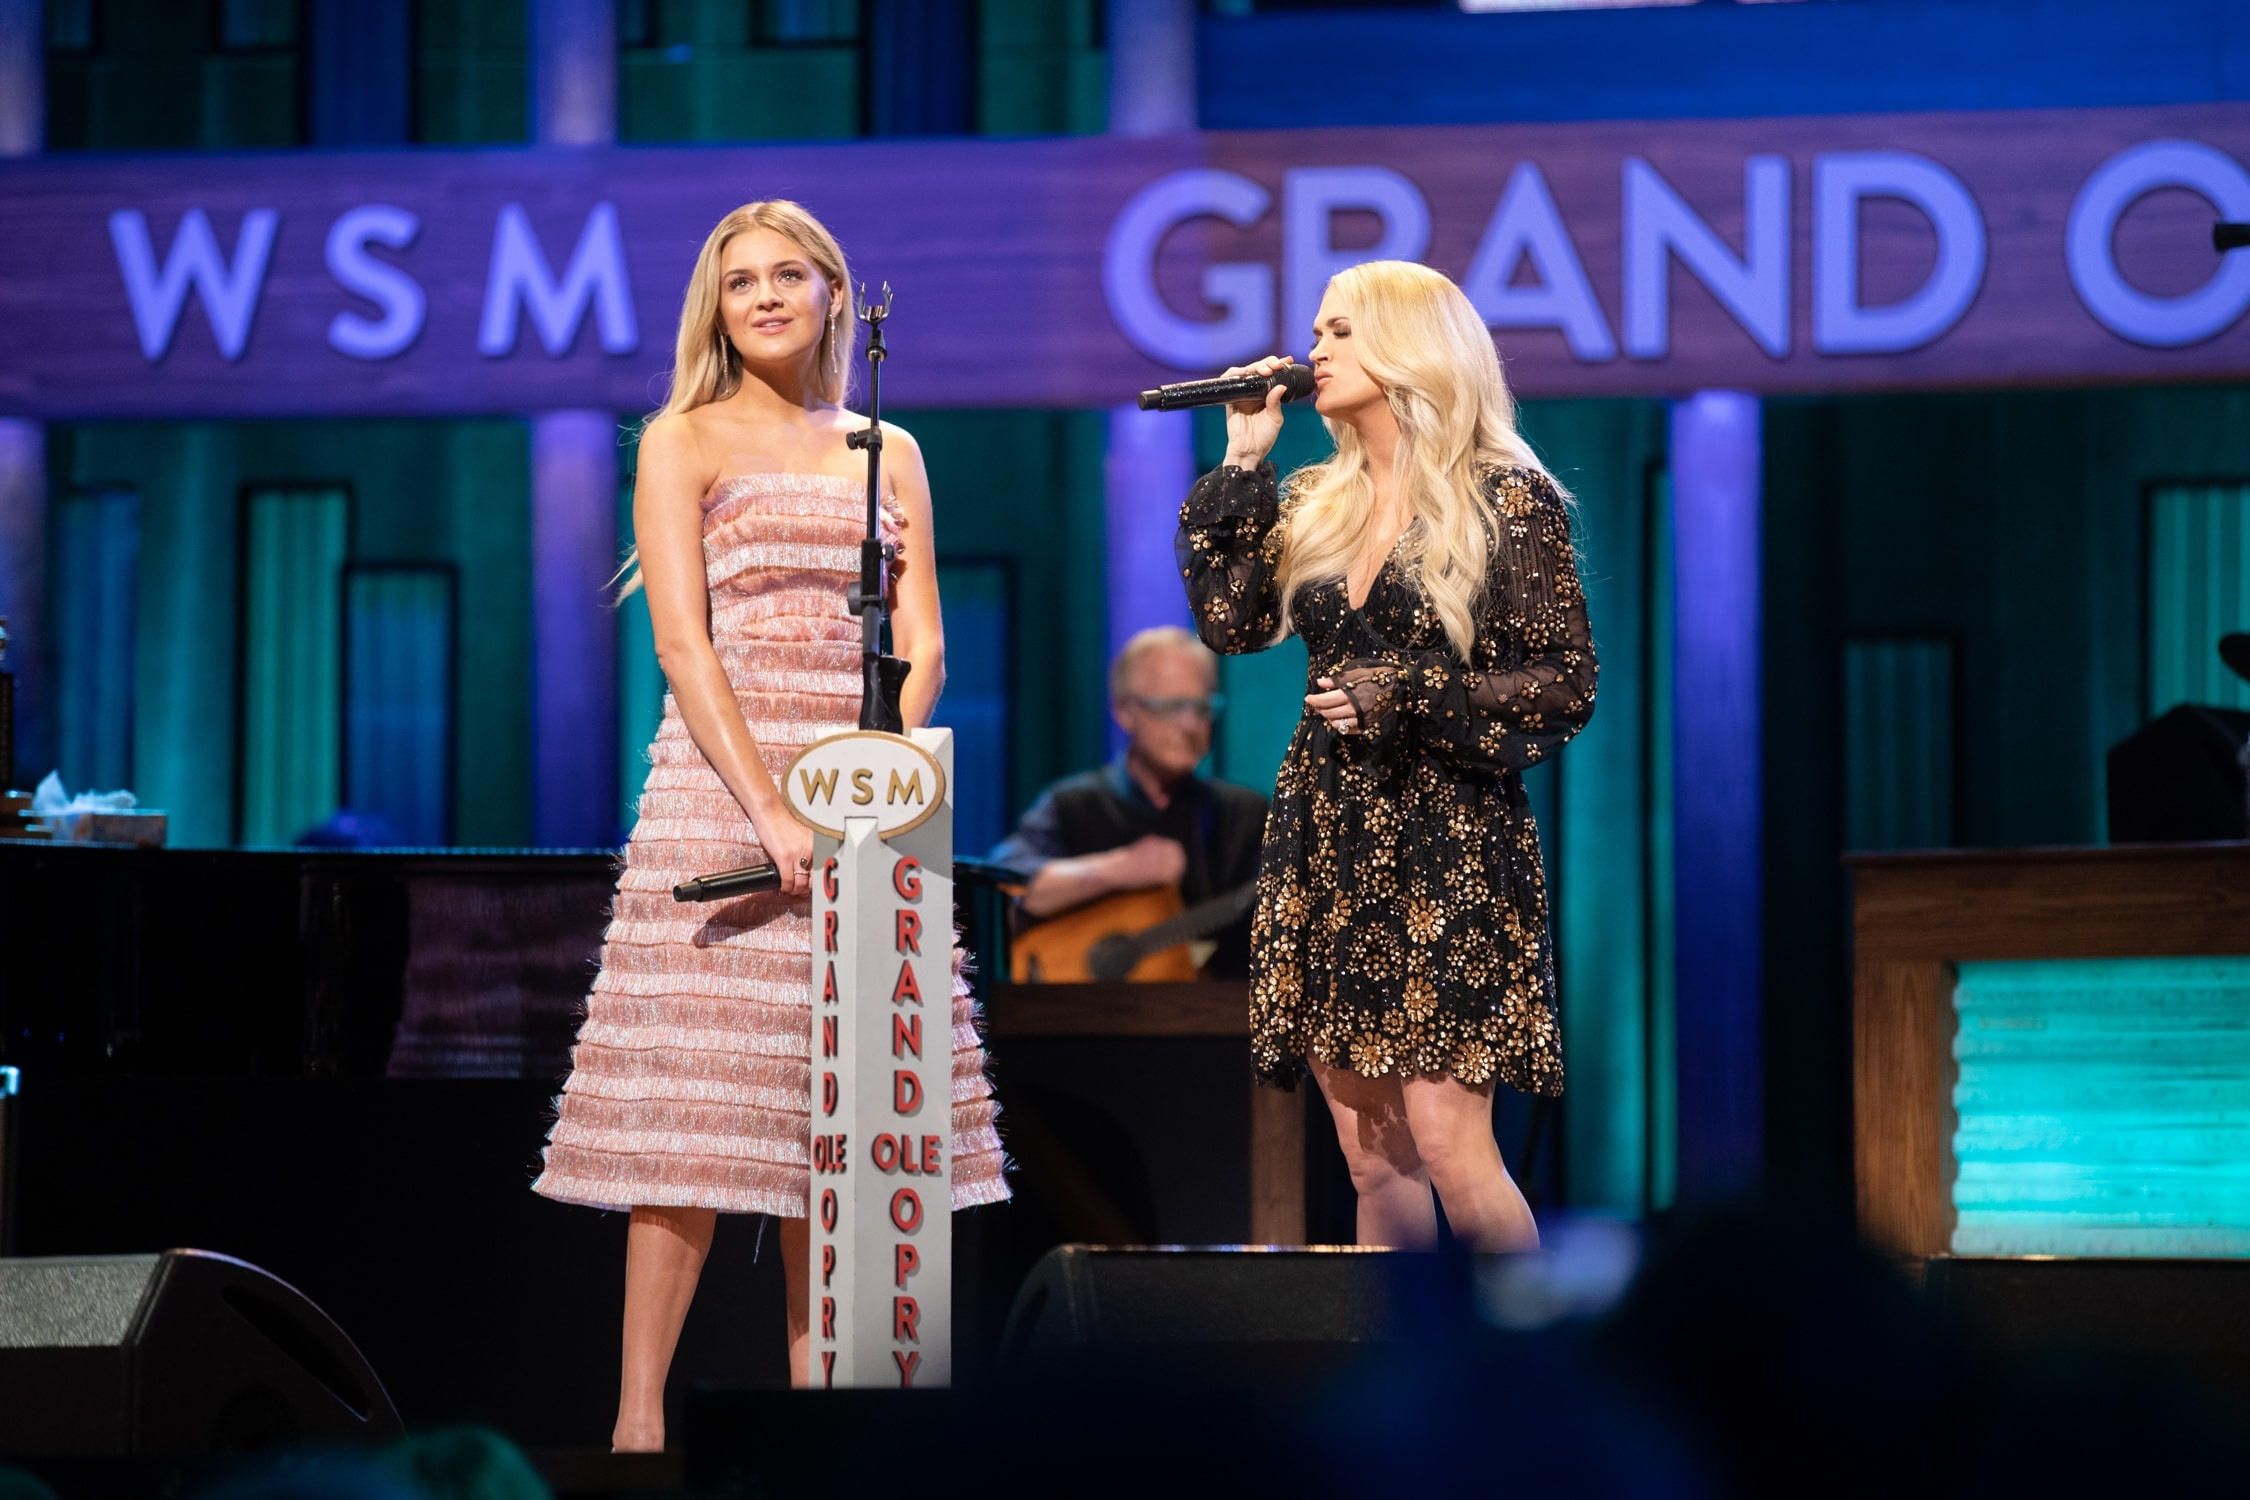 Kelsea Ballerini and Carrie Underwood; Photo courtesy Grand Ole Opry LLC. Chris Hollo, photographer